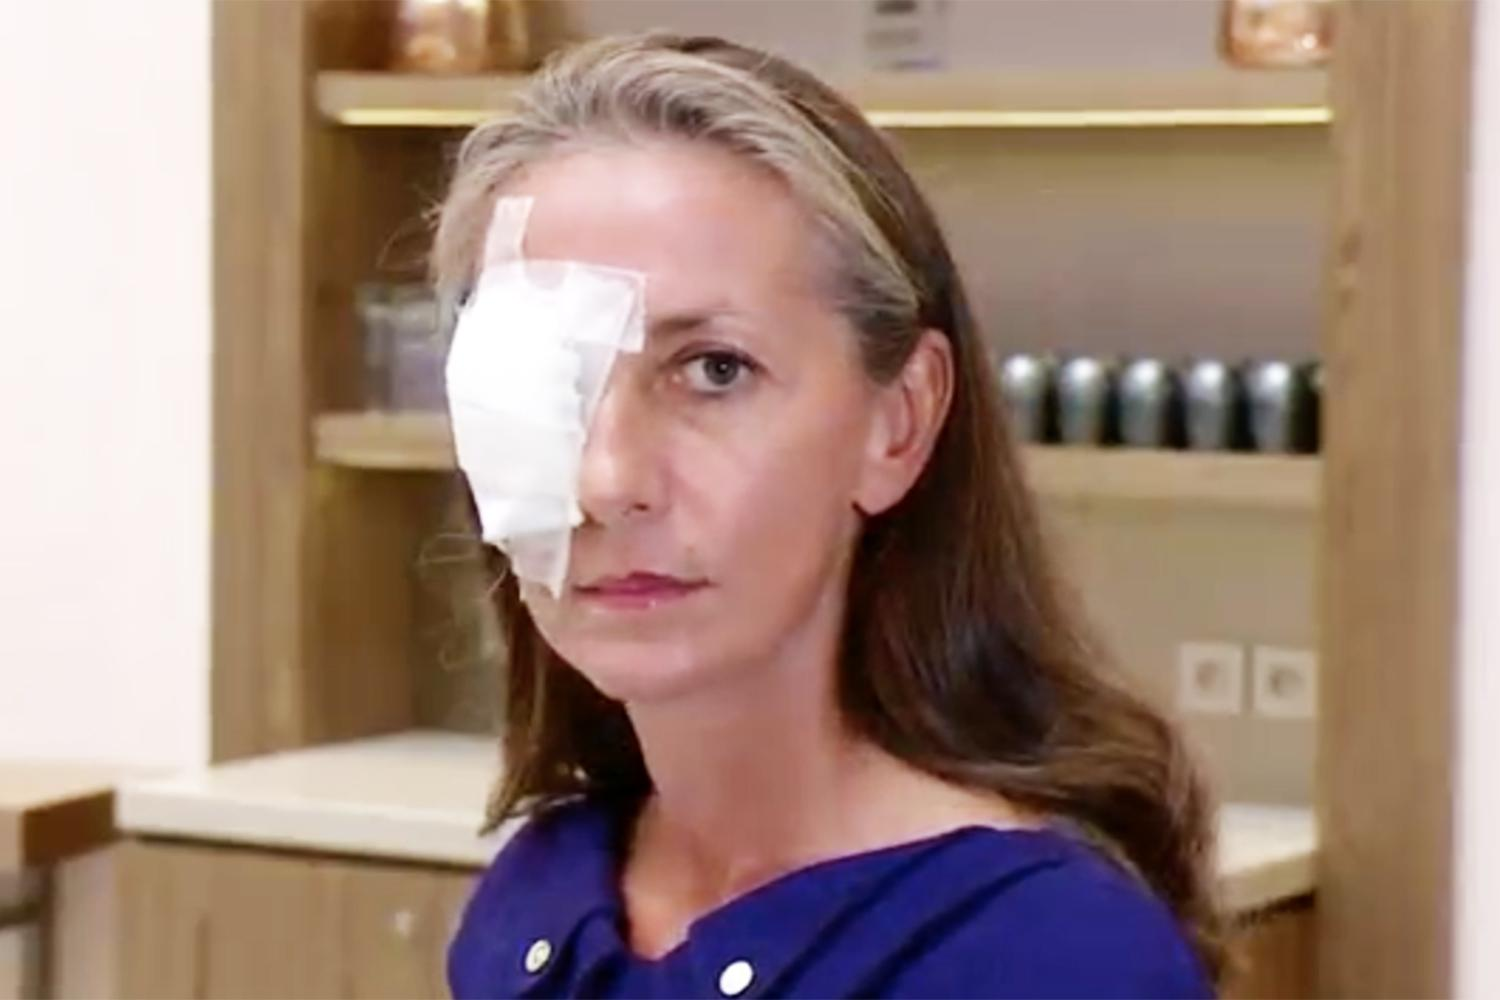 Corine Remande has been left blind in her right eye after being hit in the face by a ball